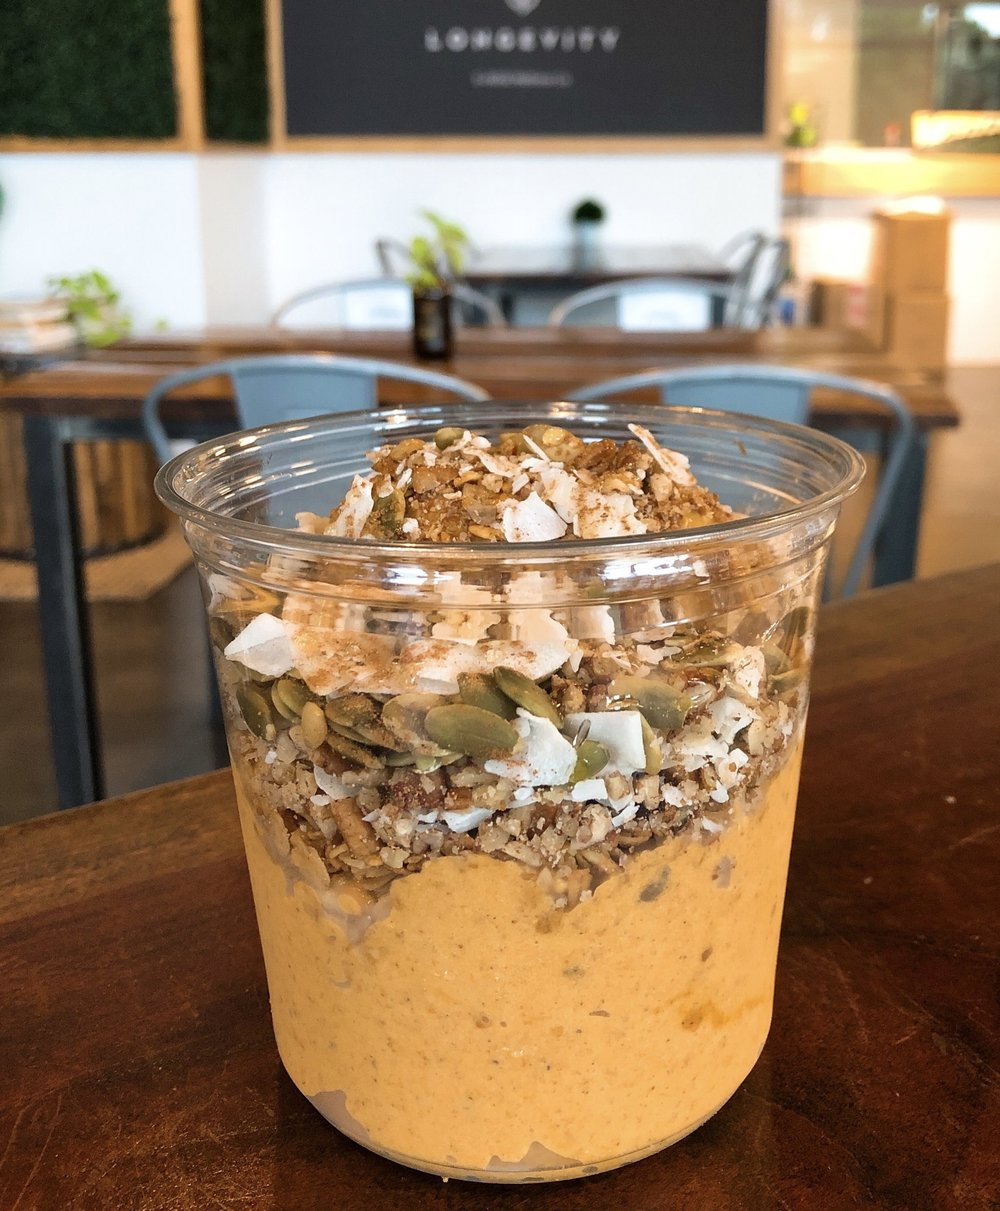 "'The Great Pumpkin Bowl' - From E+ROSE Wellness Cafes, this nutrition powerhouse is loaded with vitamins, minerals and superfoods. It also packs a great combo of carbohydrates, fats, and protein. We've got pumpkin (carb), banana (carb), coconut milk (fat), almond butter (fat, protein), pecans (fat, protein) and some other great additions like cinnamon, nutmeg and vanilla that provide health benefits beyond the ""basics"" we're talking about here."